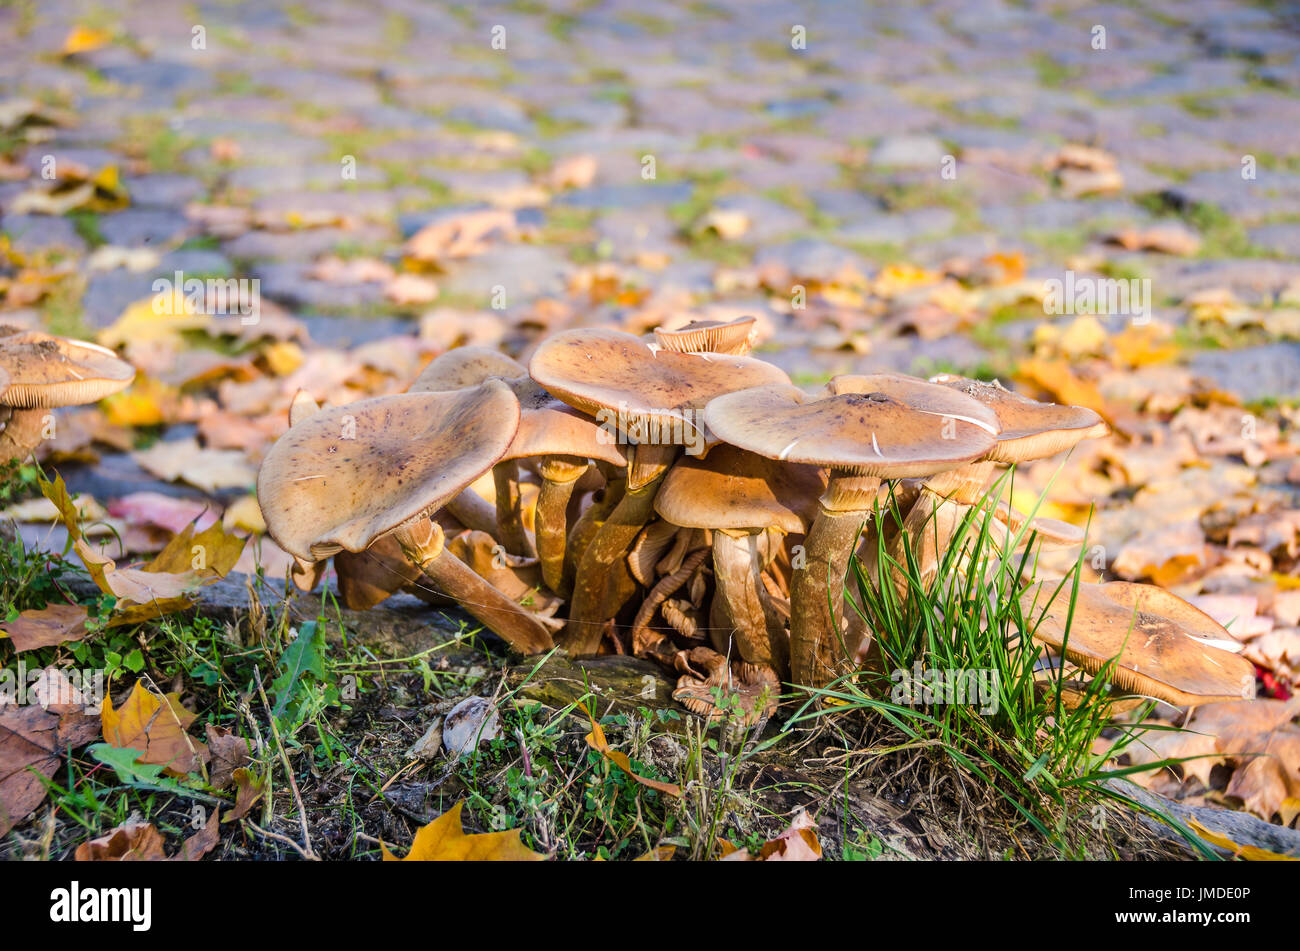 Honey fungus, or Armillaria, parasitic fungi growing in my garden in Germany in the fall. It  grows on wood, typically in small dense clumps or tufts. - Stock Image